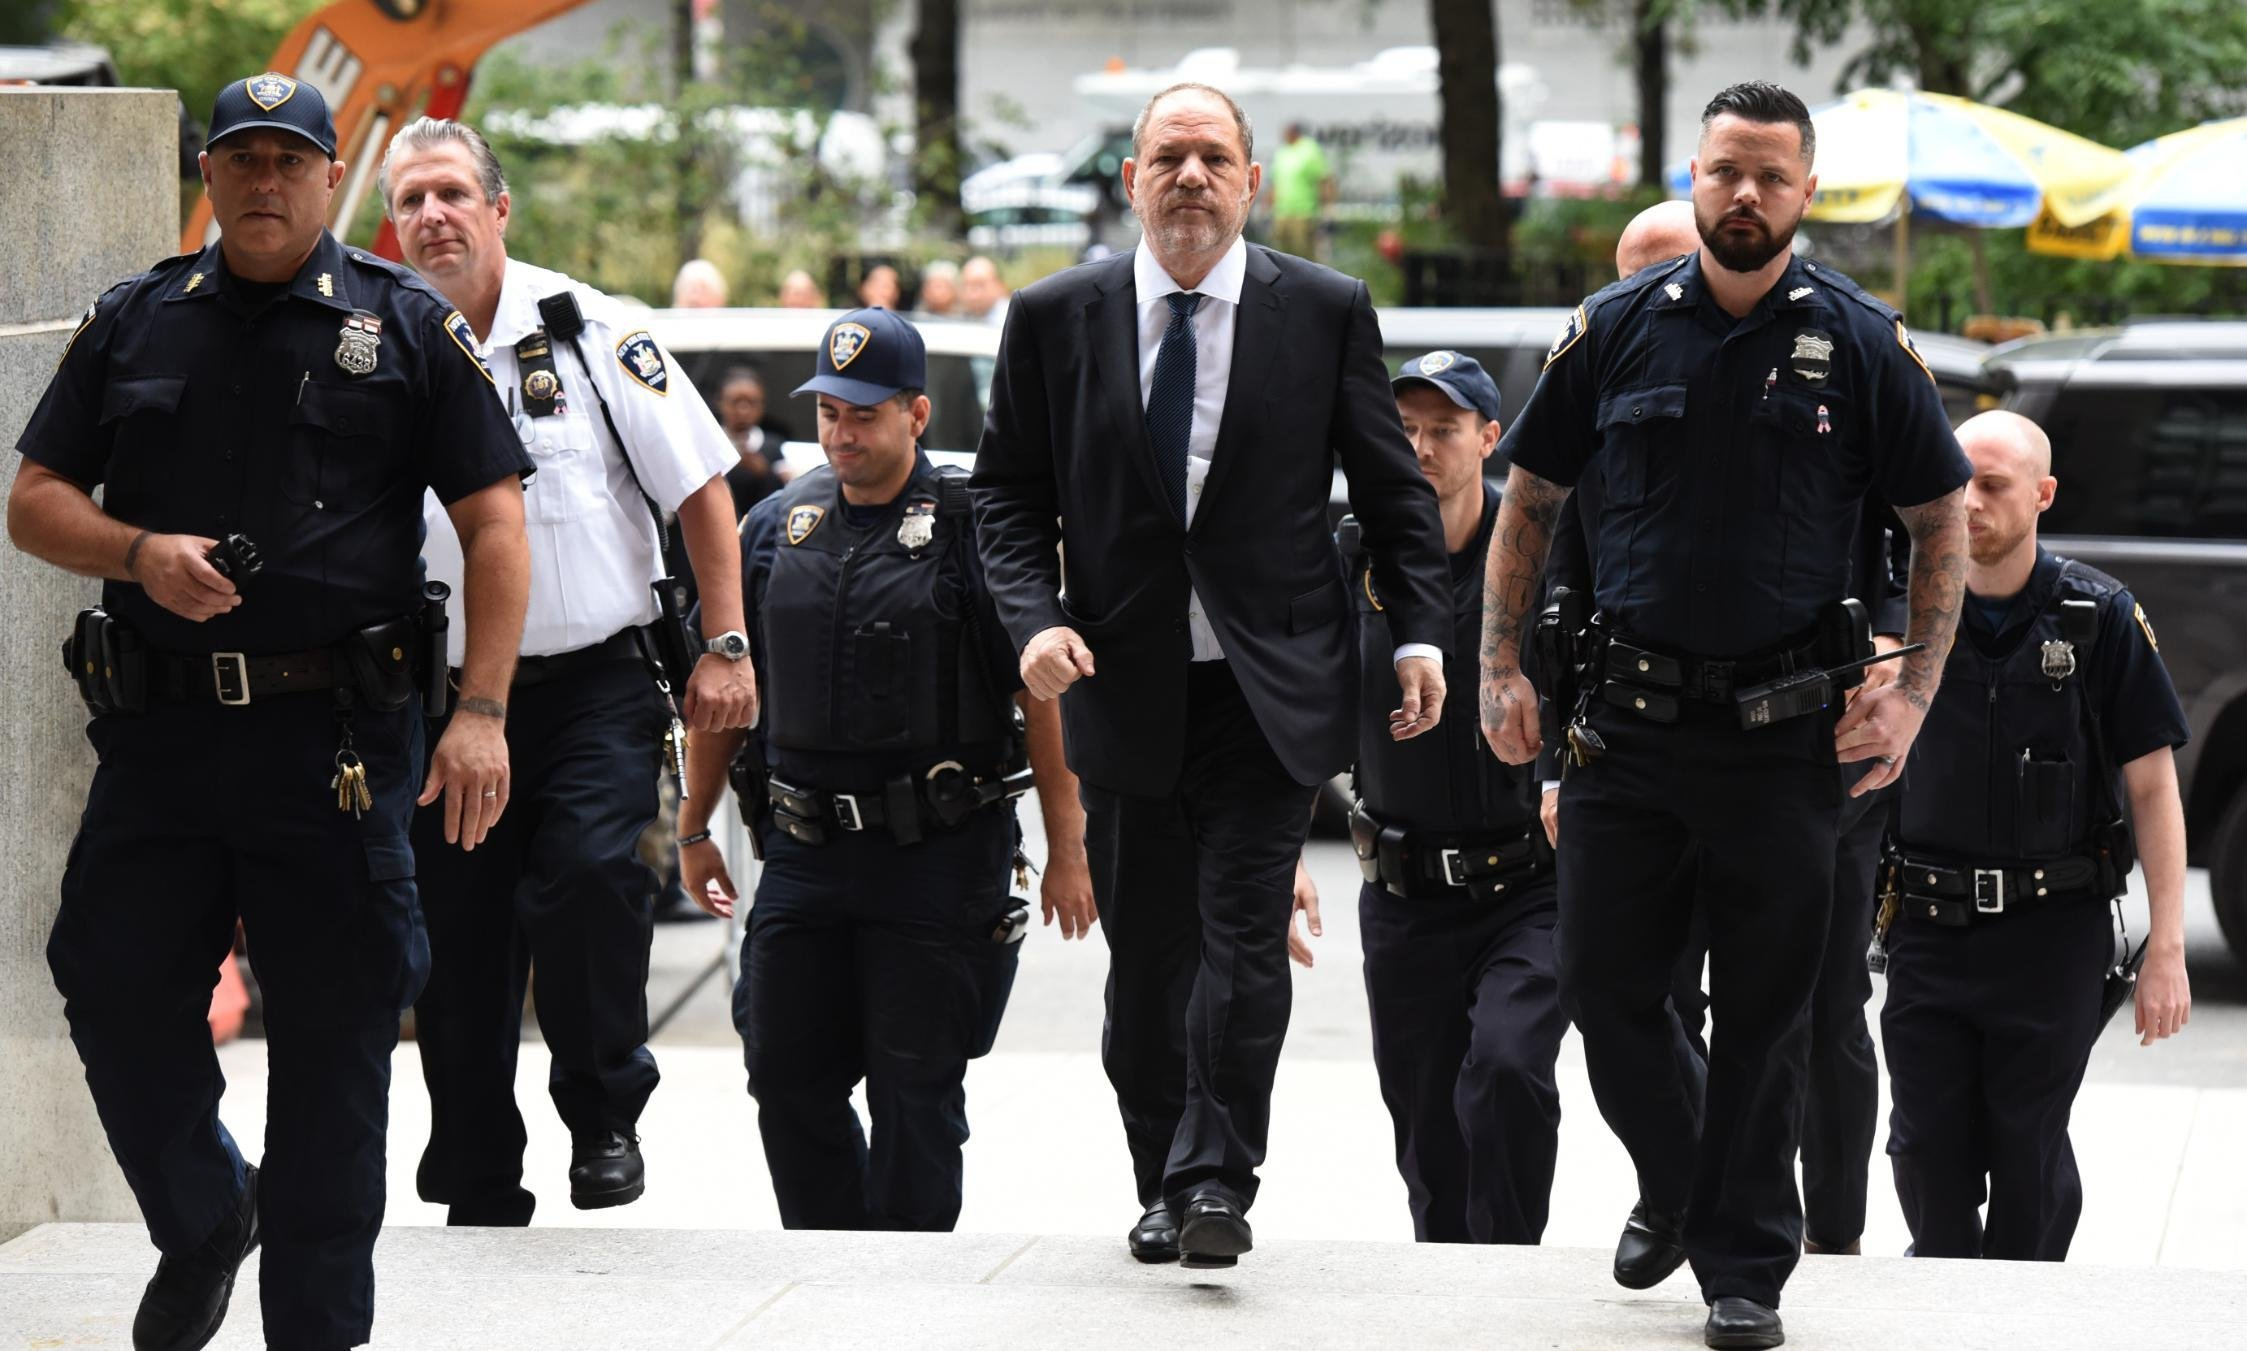 Harvey Weinstein's lawyer wants his trial moved out of New York City and its 'circus-like atmosphere'